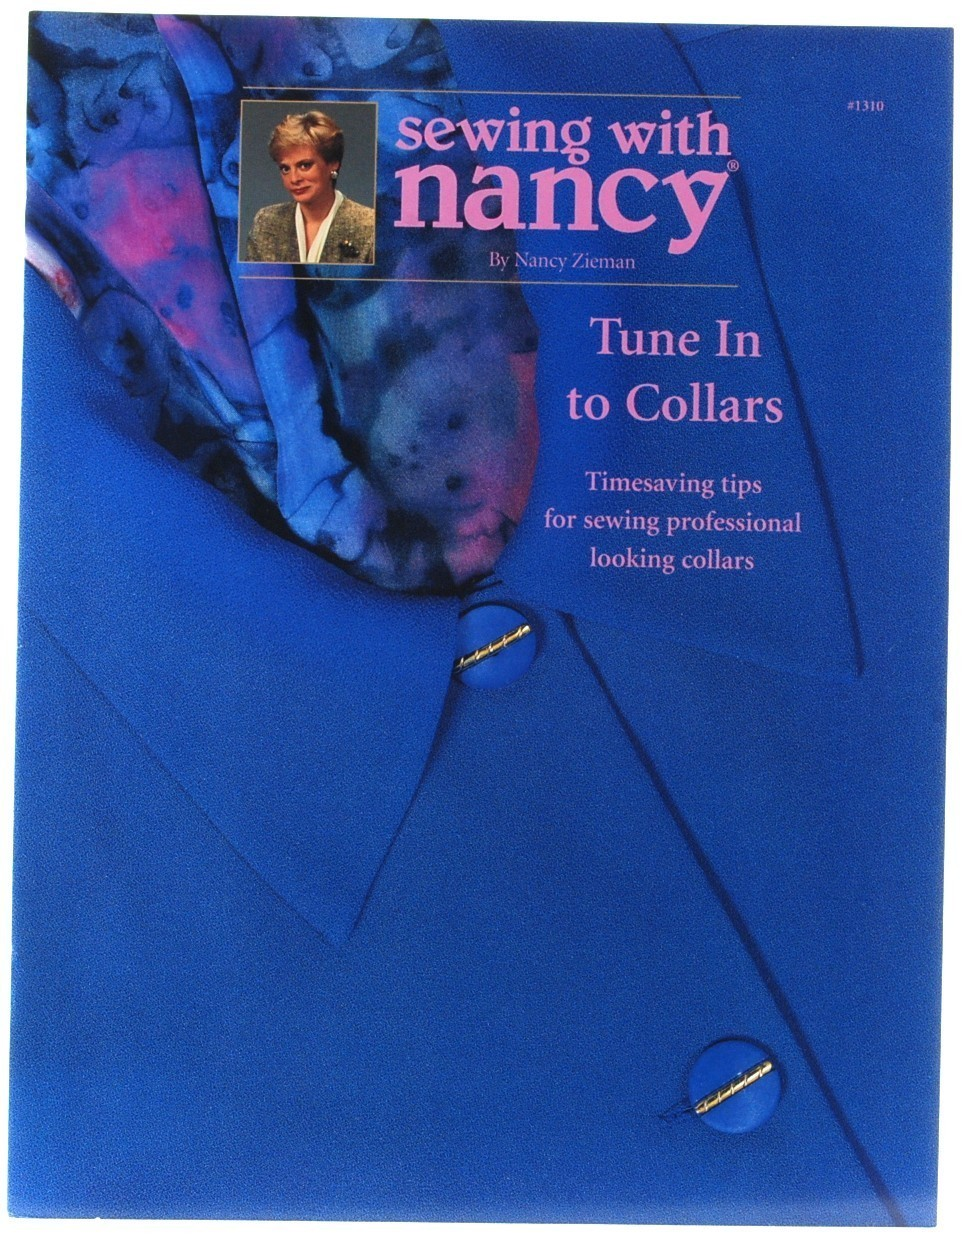 Primary image for Sewing with Nancy Zieman #1310 Tune In to Collars Sewing Clothing Tailoring